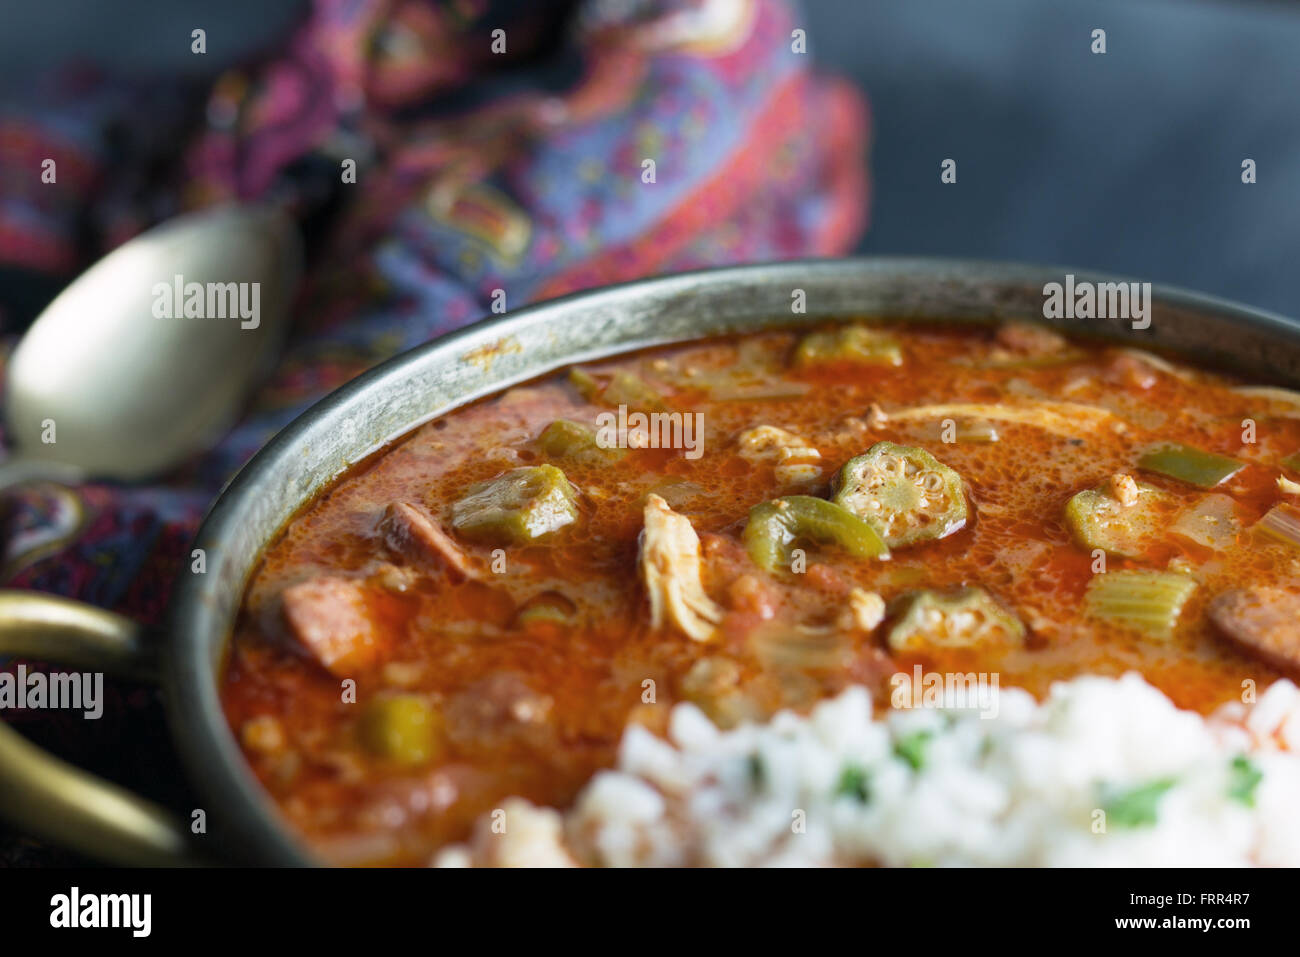 Copper pot filled with sausage gumbo and a scoop of rice. - Stock Image